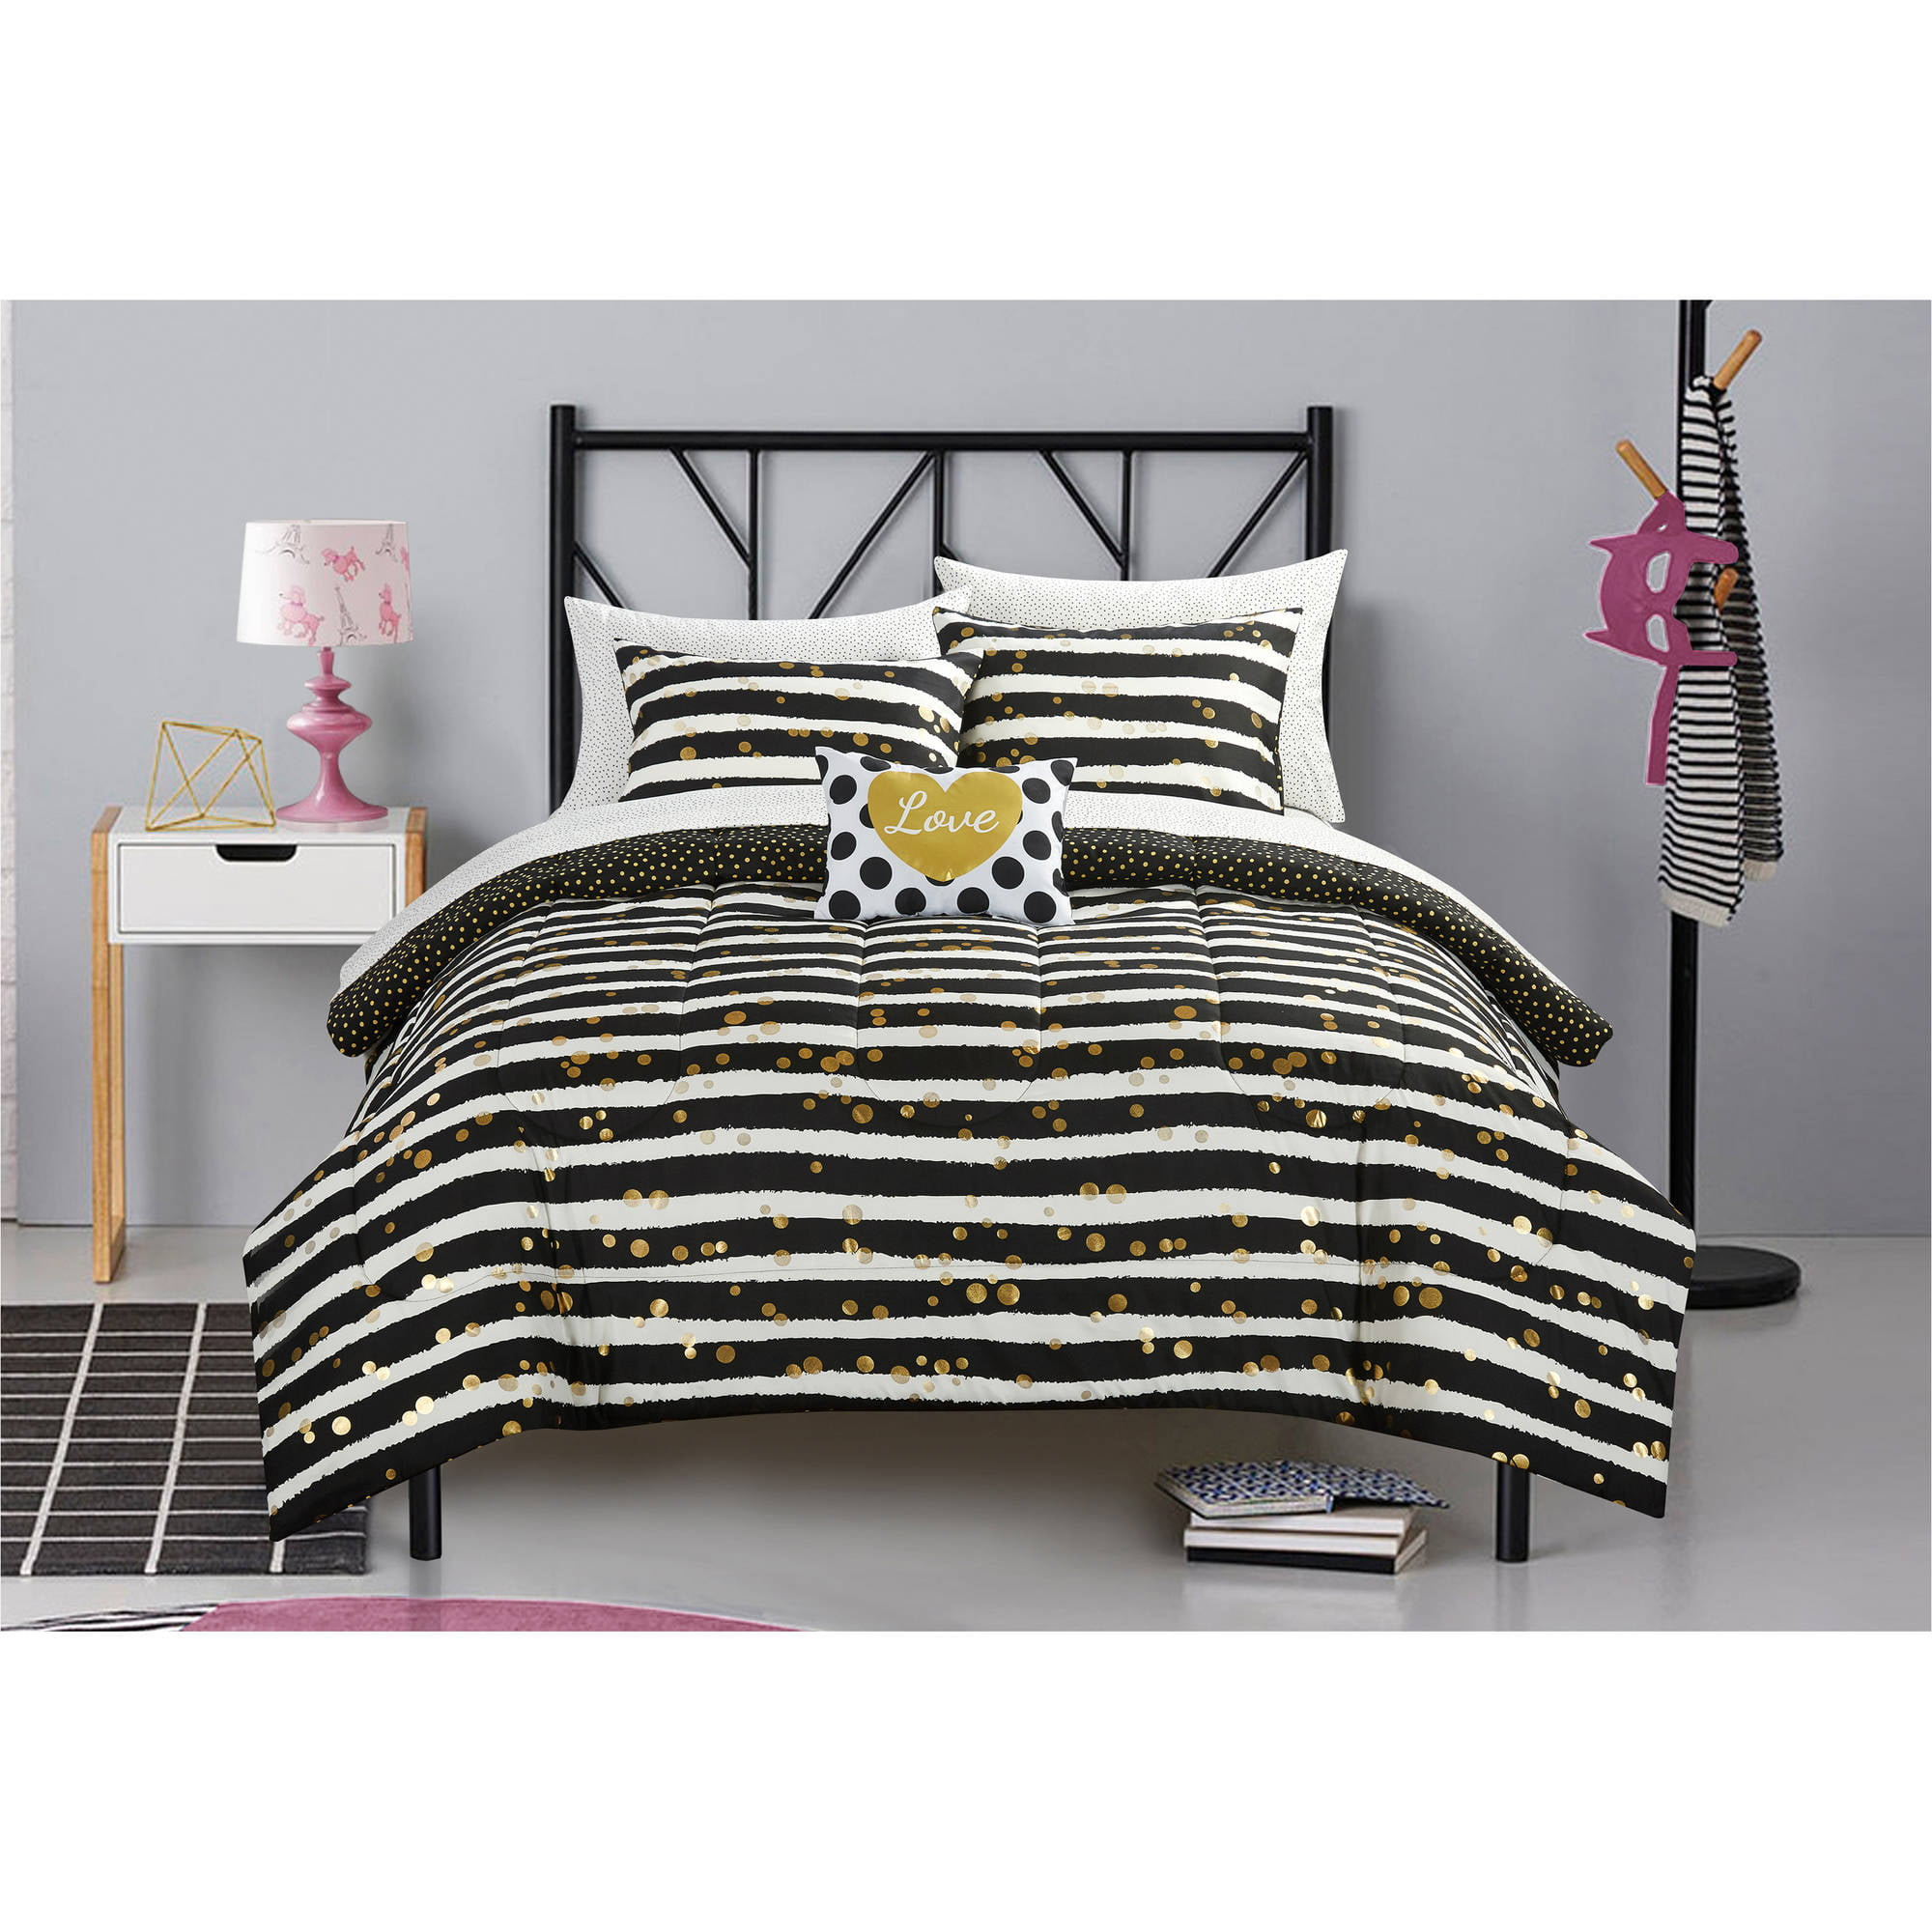 white and black bed sheets. Contemporary White Latitude Gold Glitter Stripe And Polka Dot Bed In A Bag Bedding Set   Walmartcom And White Black Sheets K